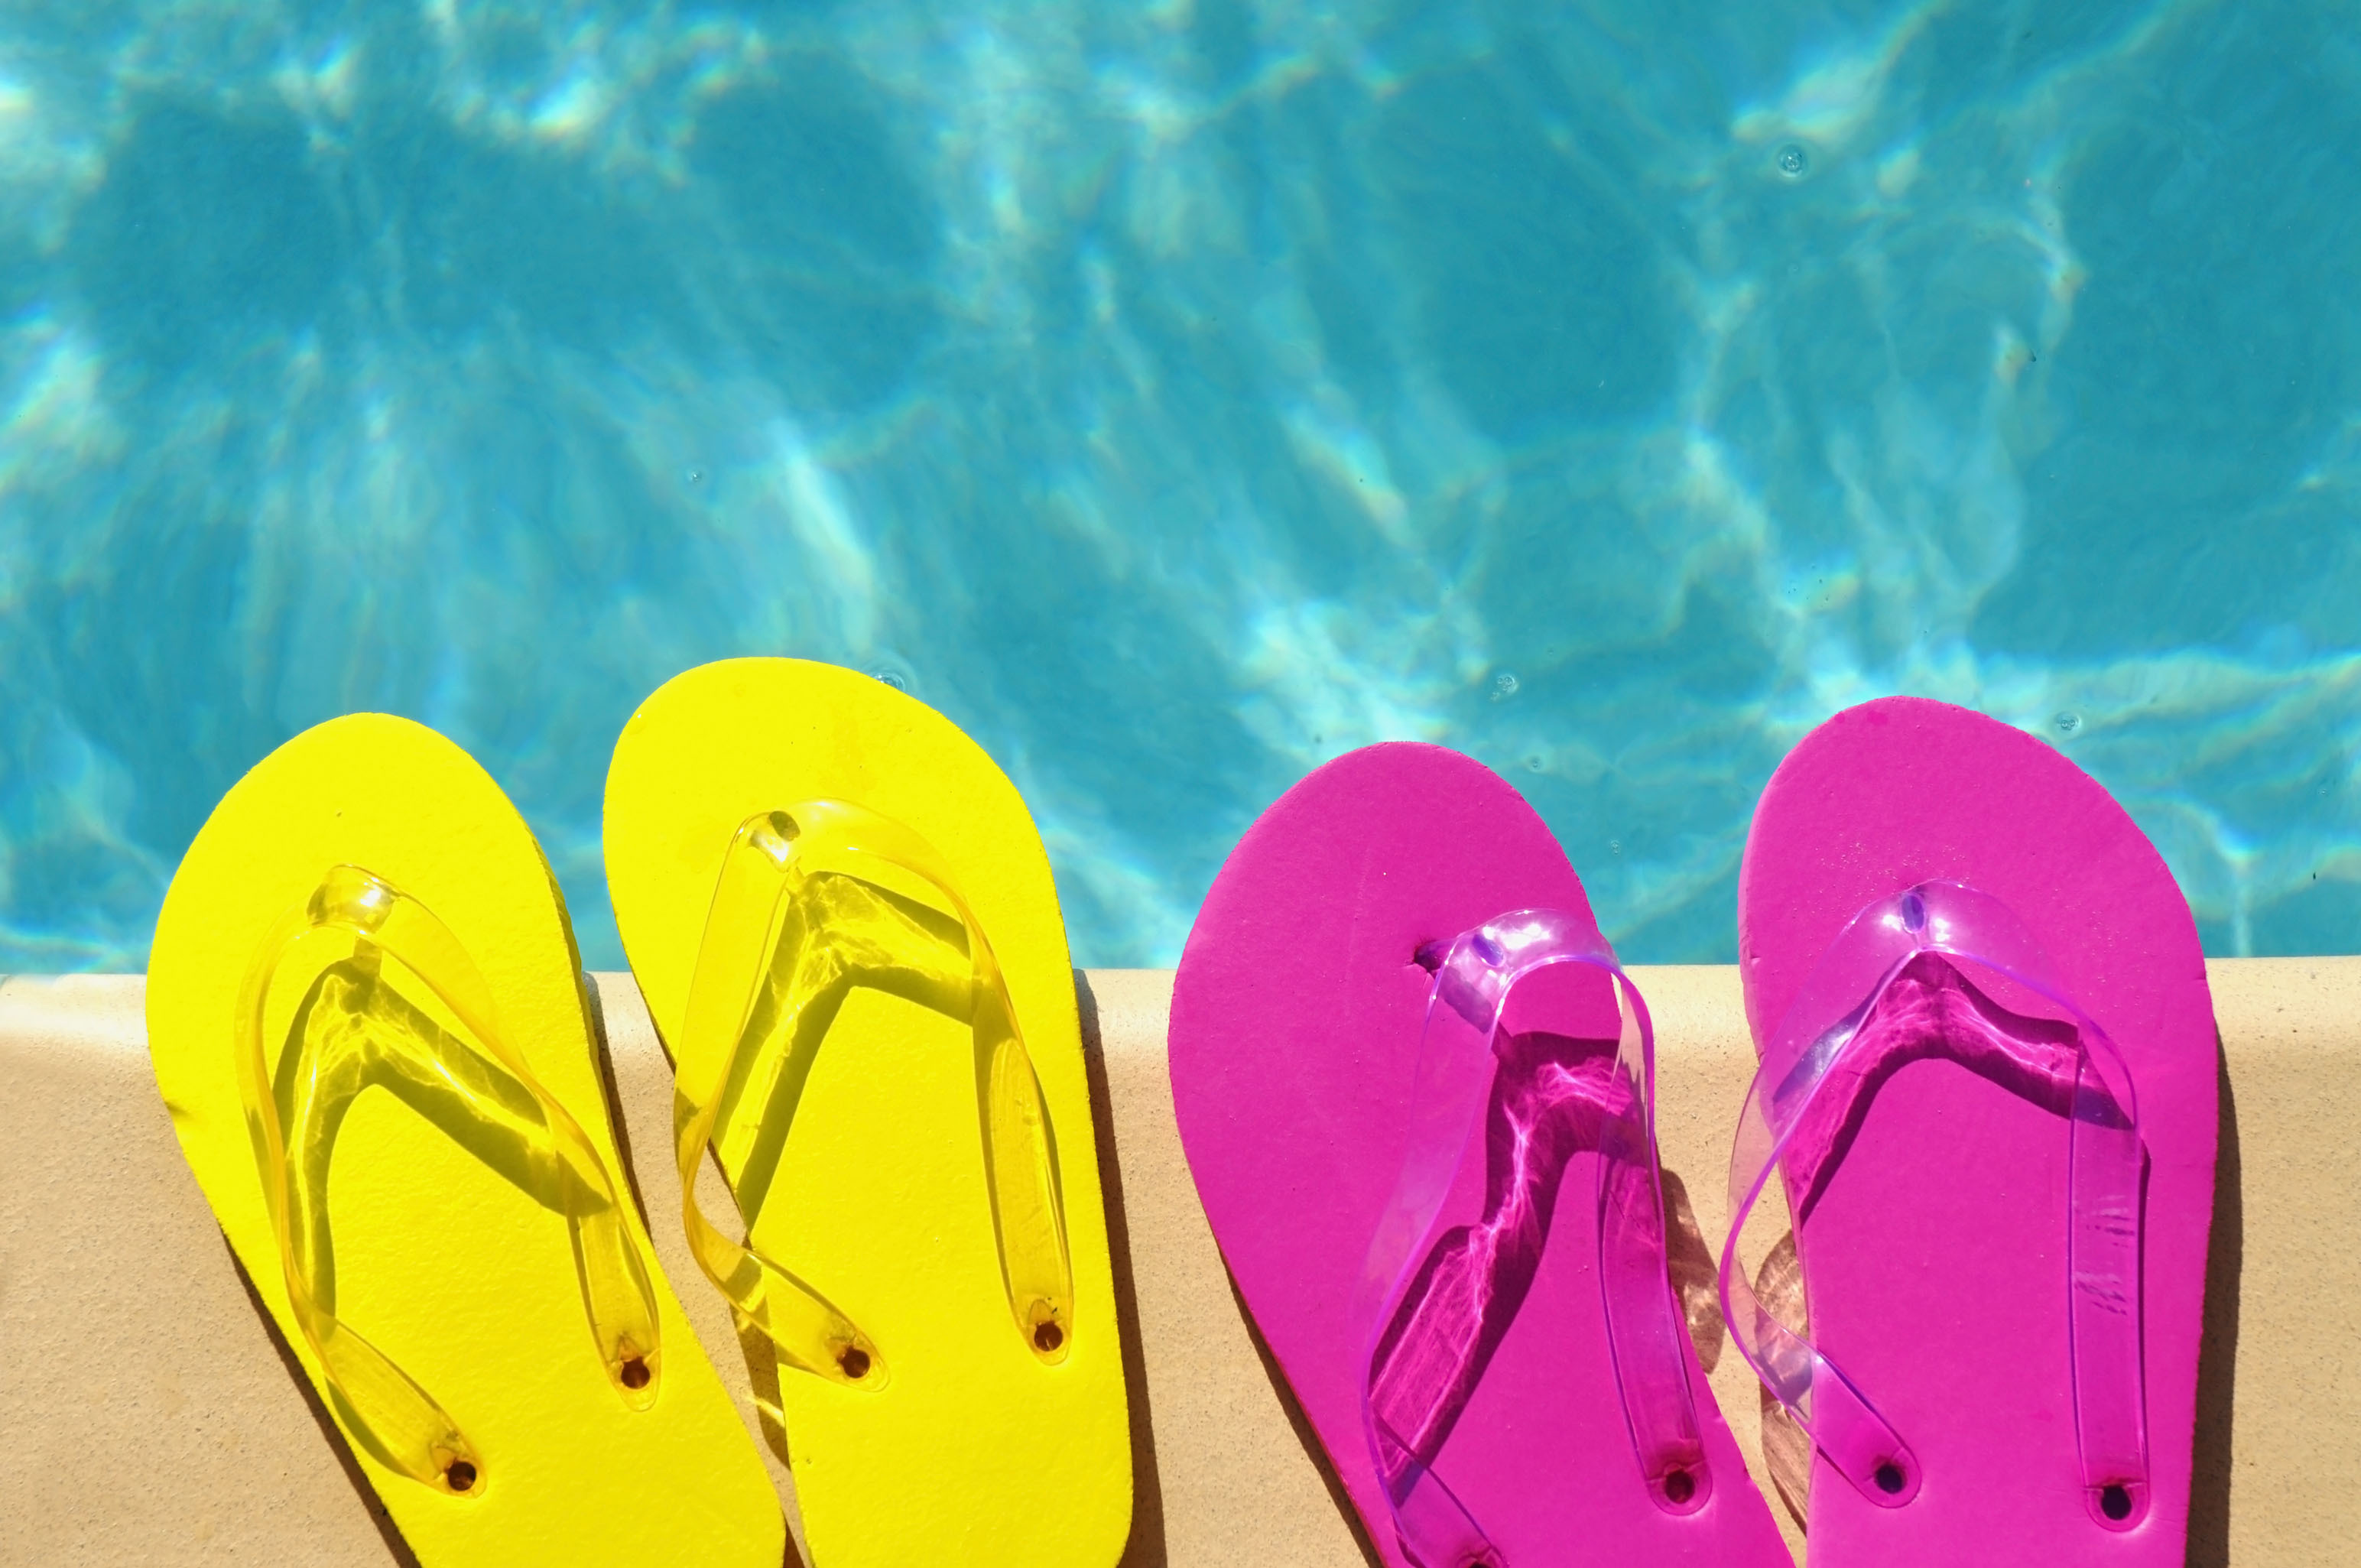 0d370dad3deca1 double flip flops by pool | Bender Jewish Community Center of ...